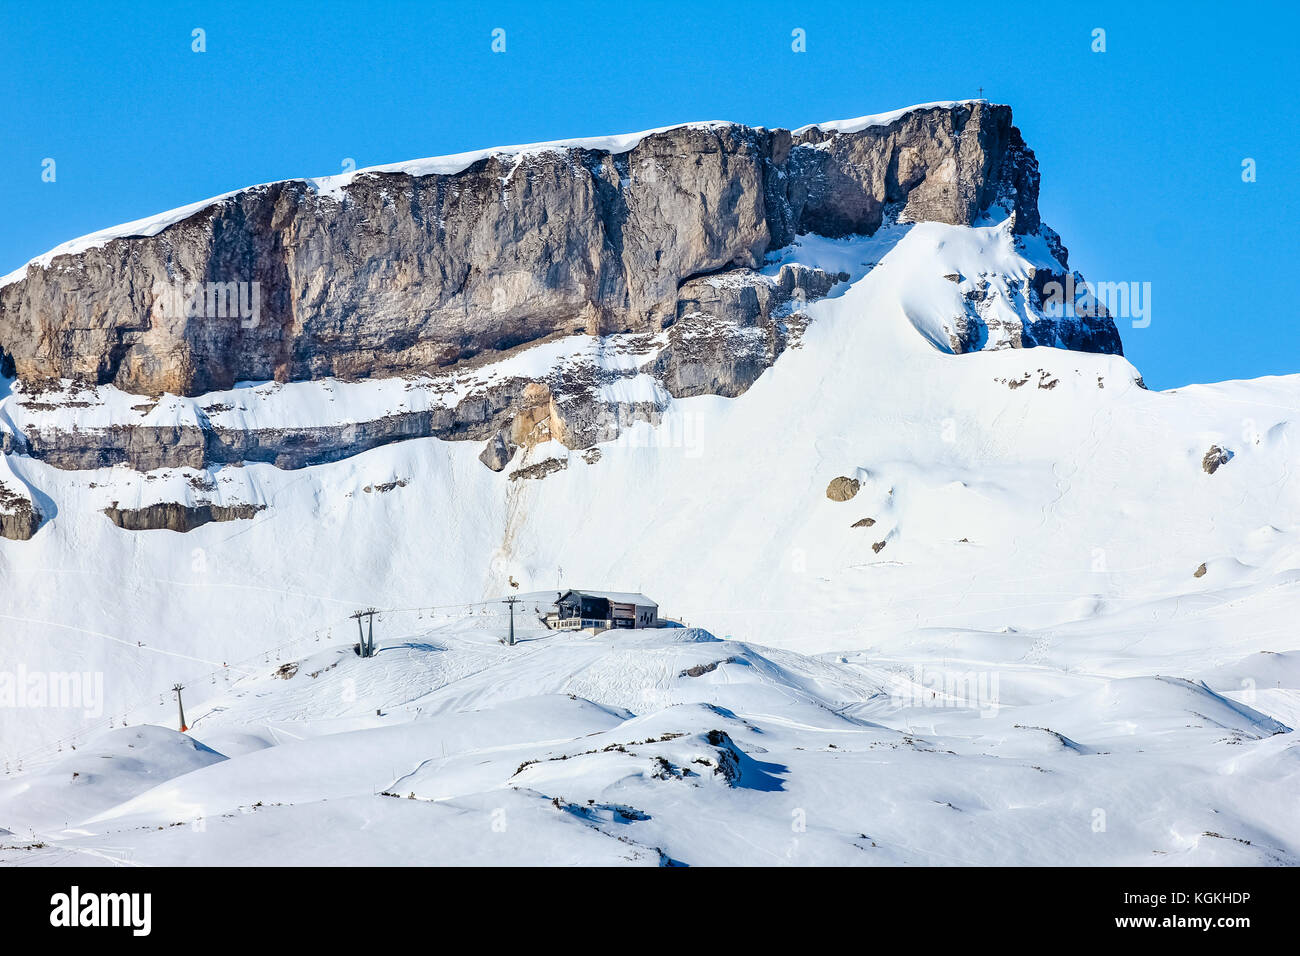 Snow mountains winter landscape at Ifen ski resort. Bavaria, Germany. - Stock Image